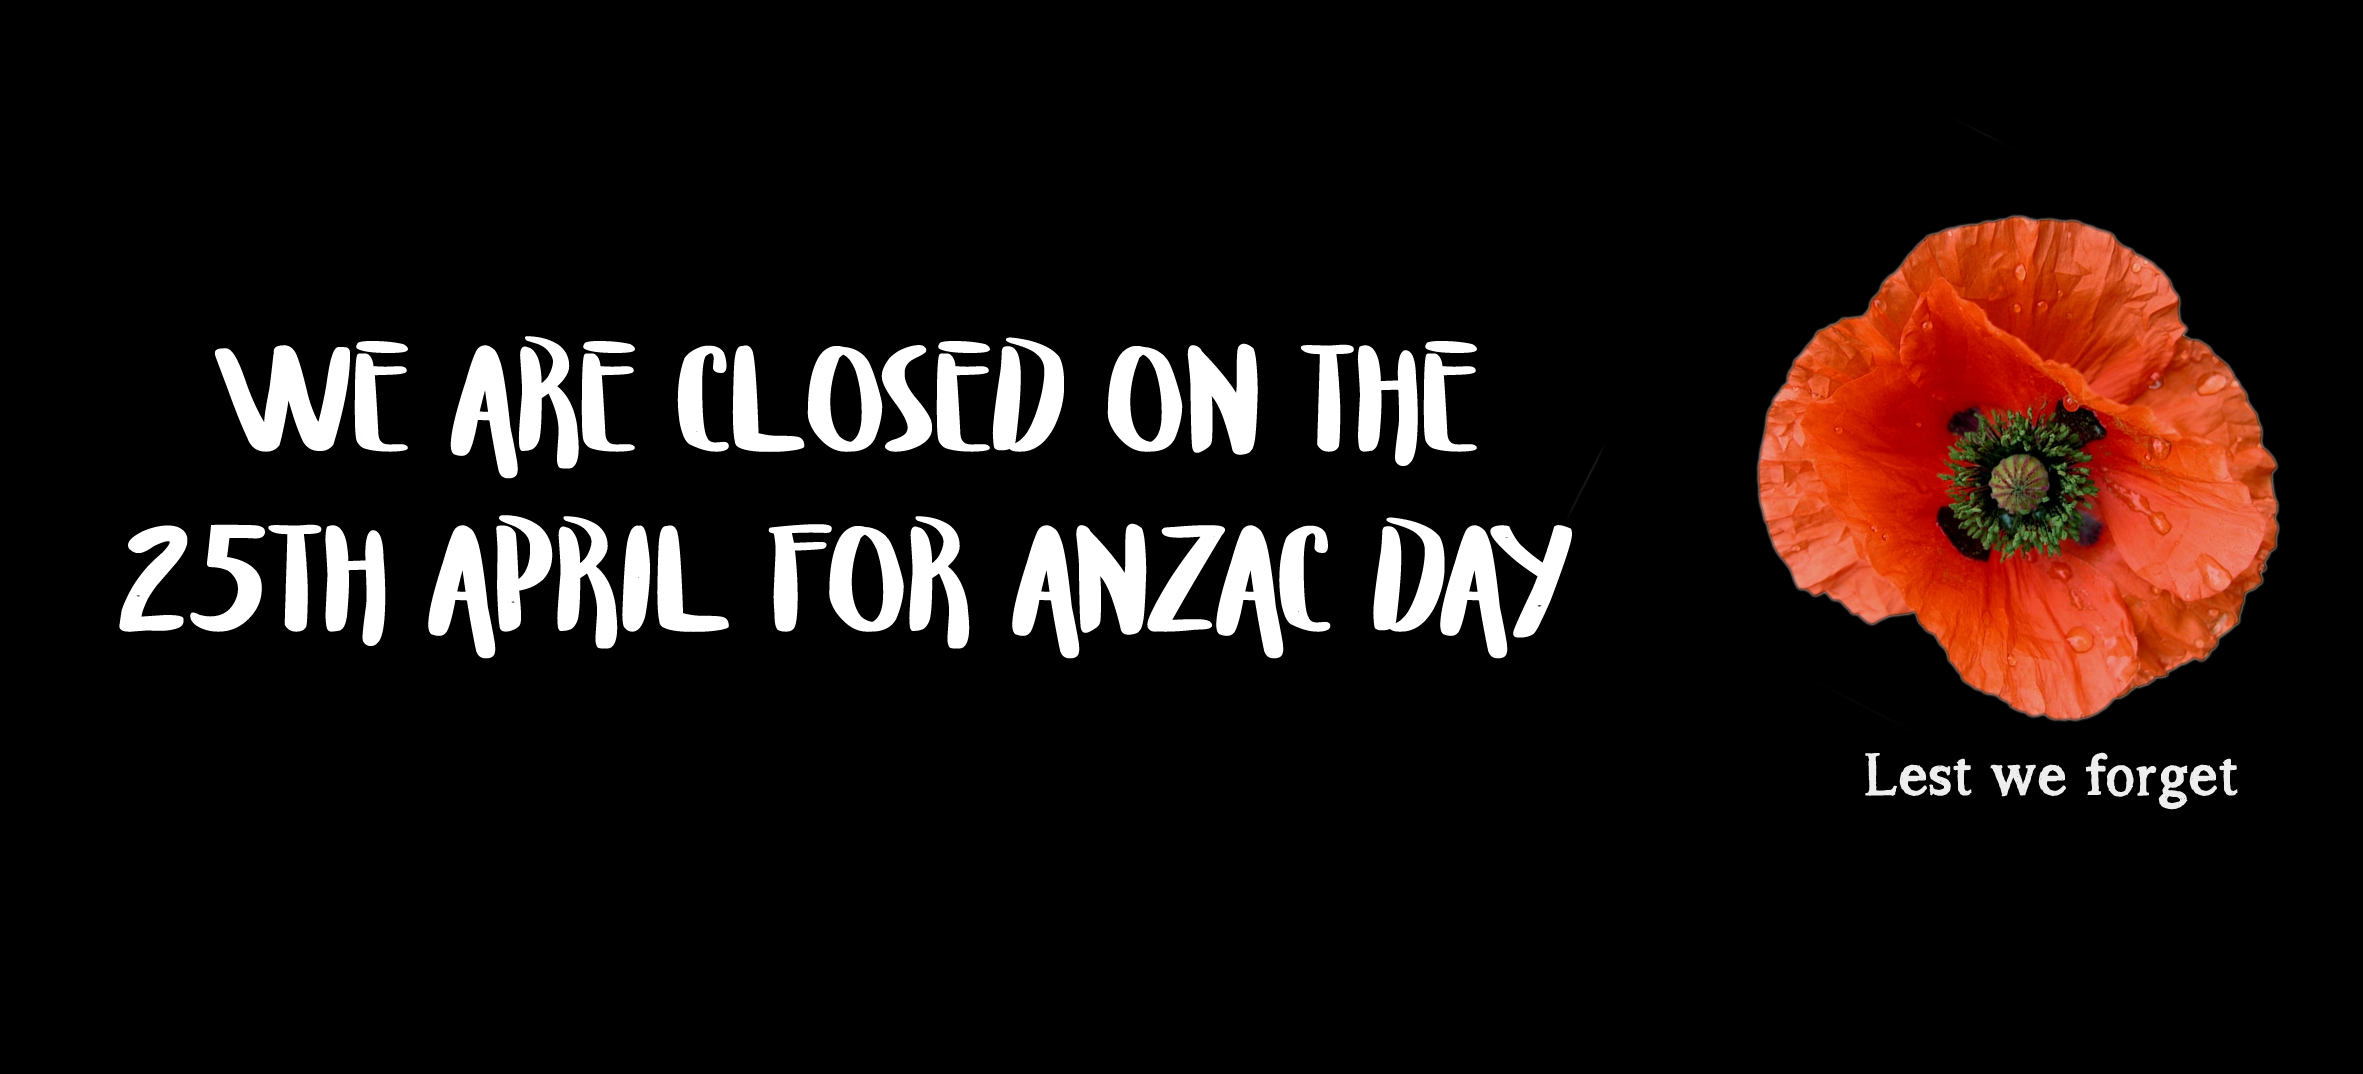 anzac day closing 2019